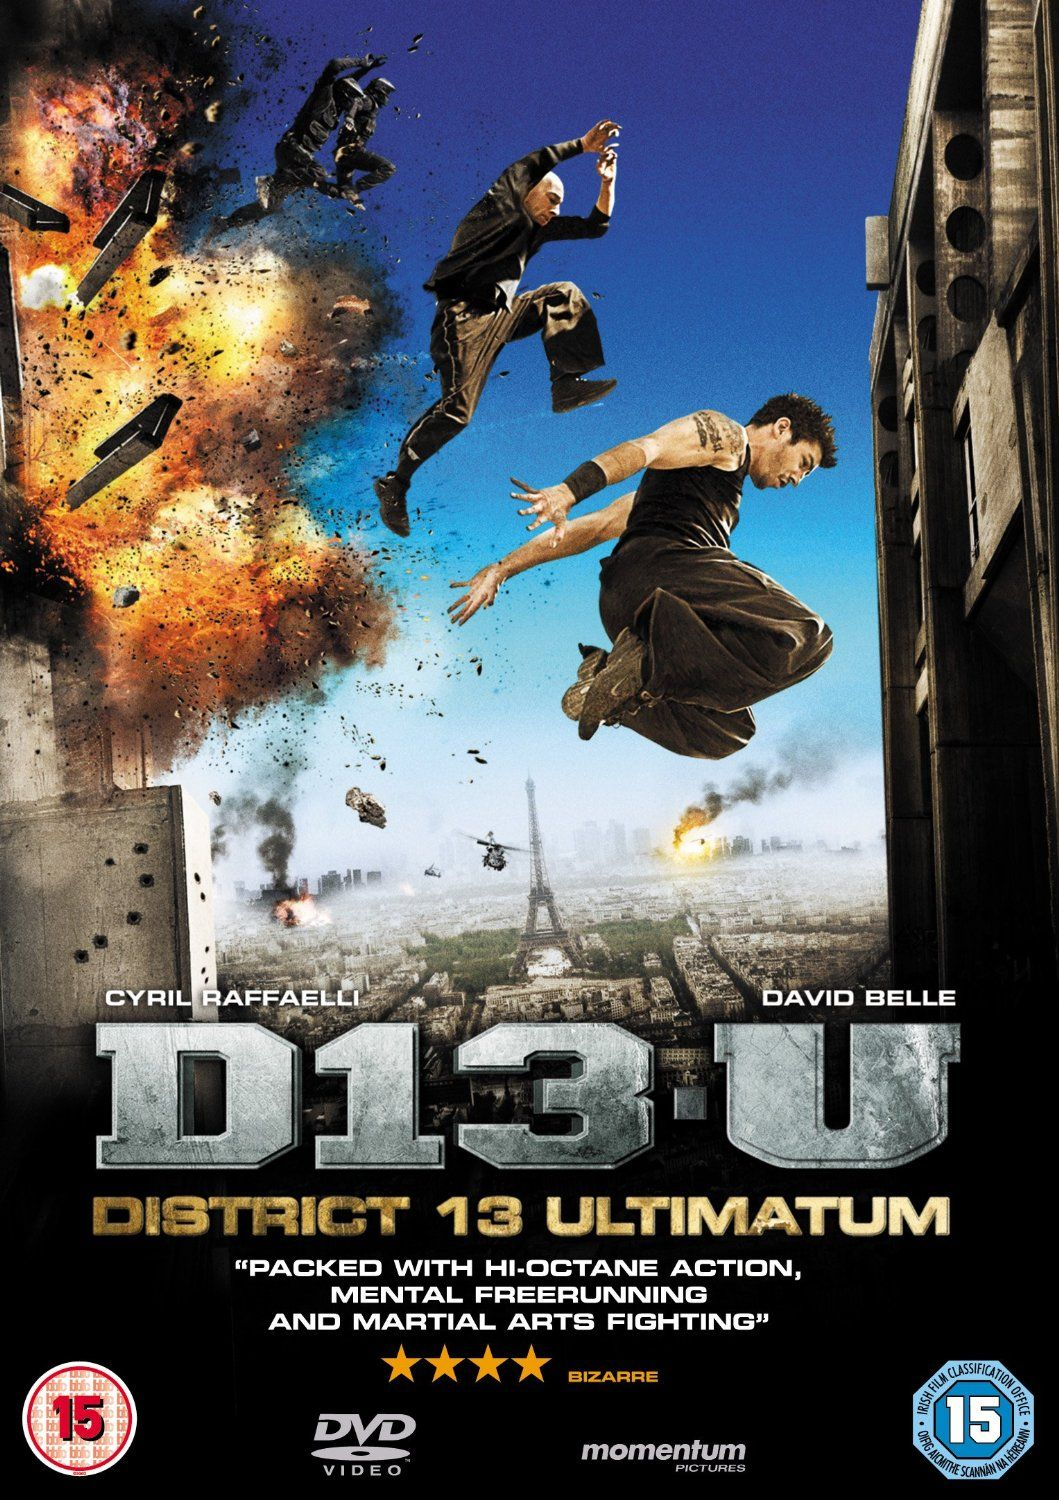 b13 ultimatum film gratuit